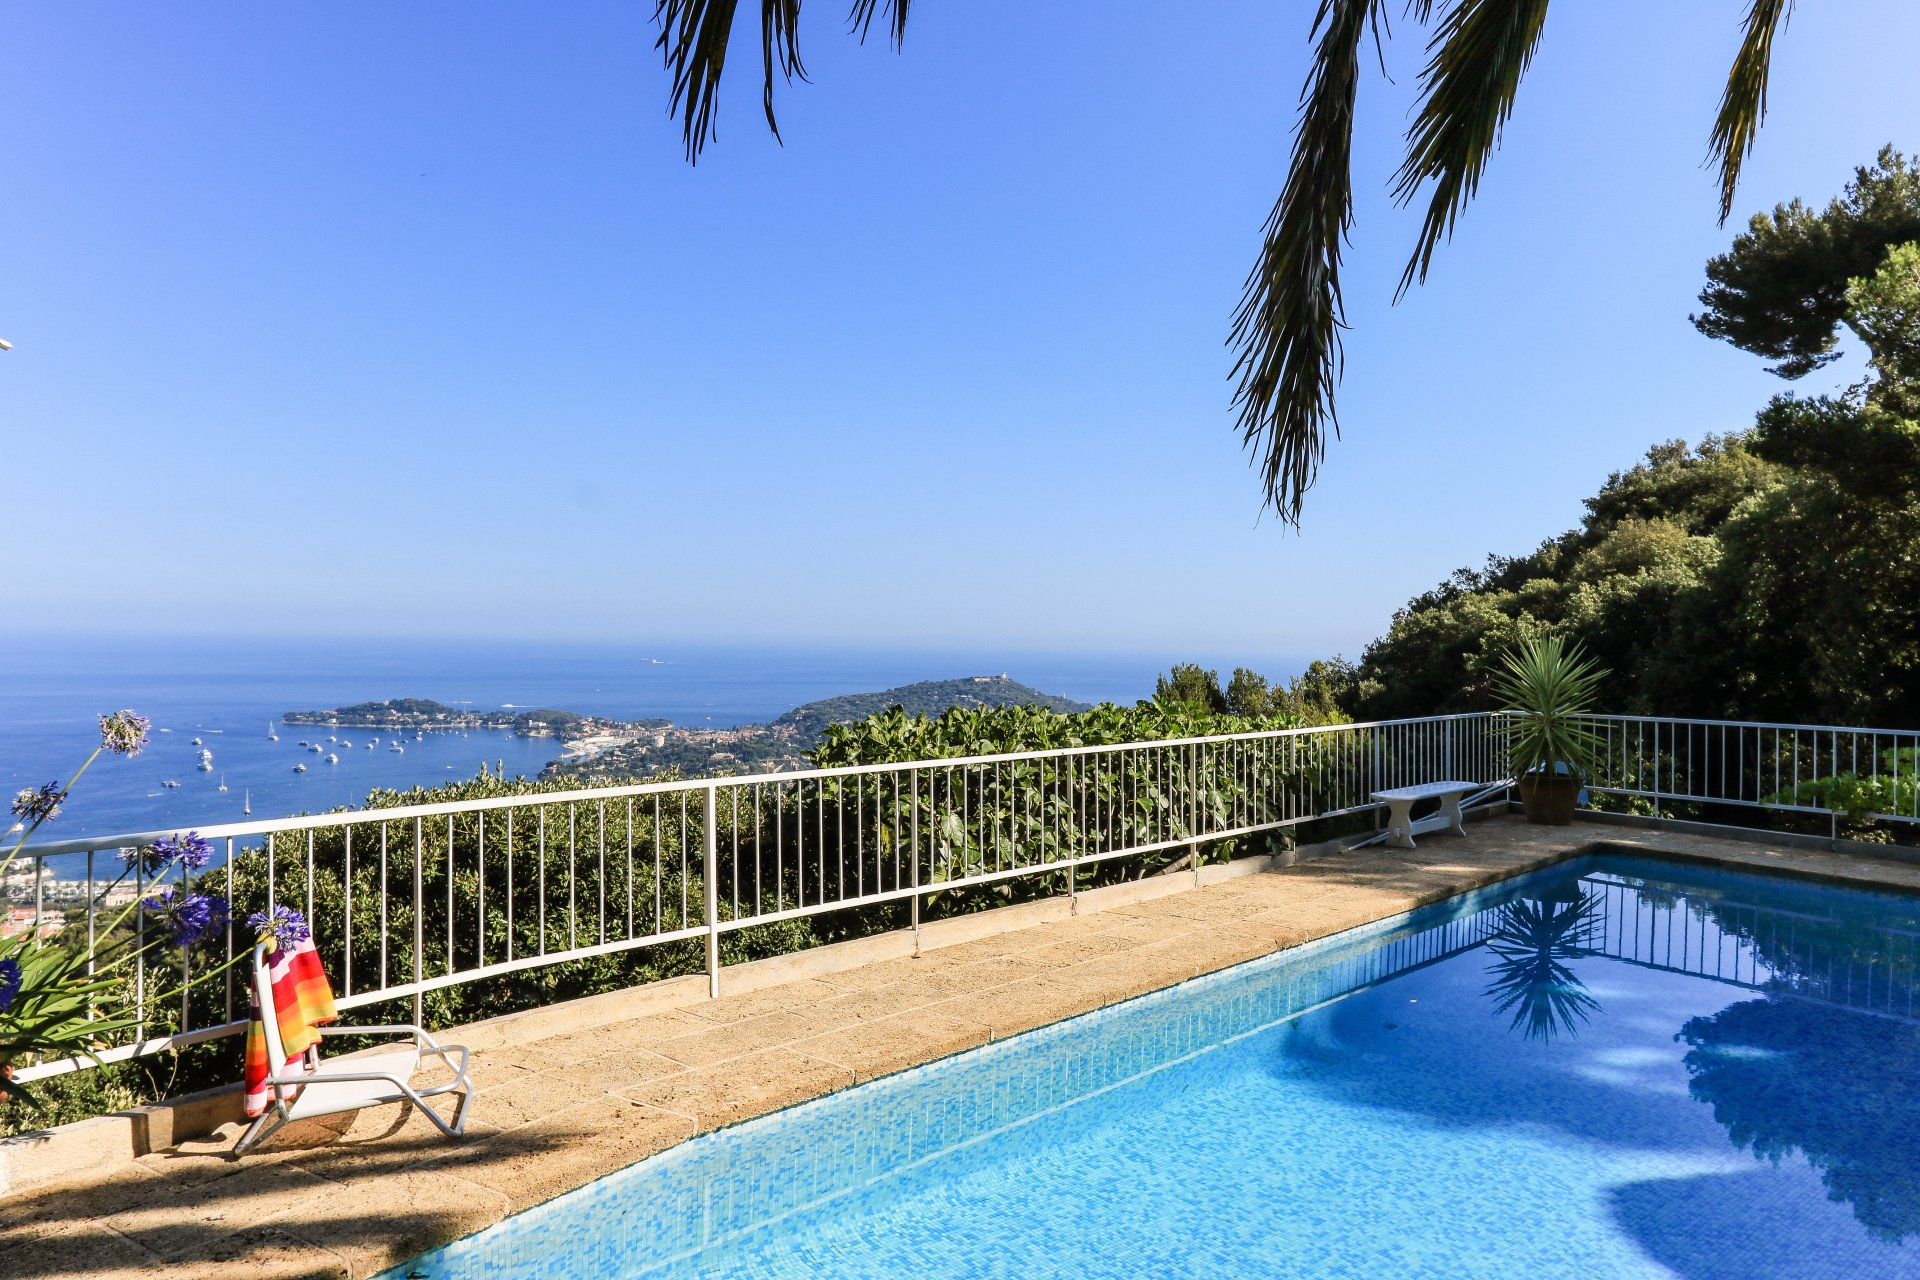 House in Villefranche sur Mer- sea view